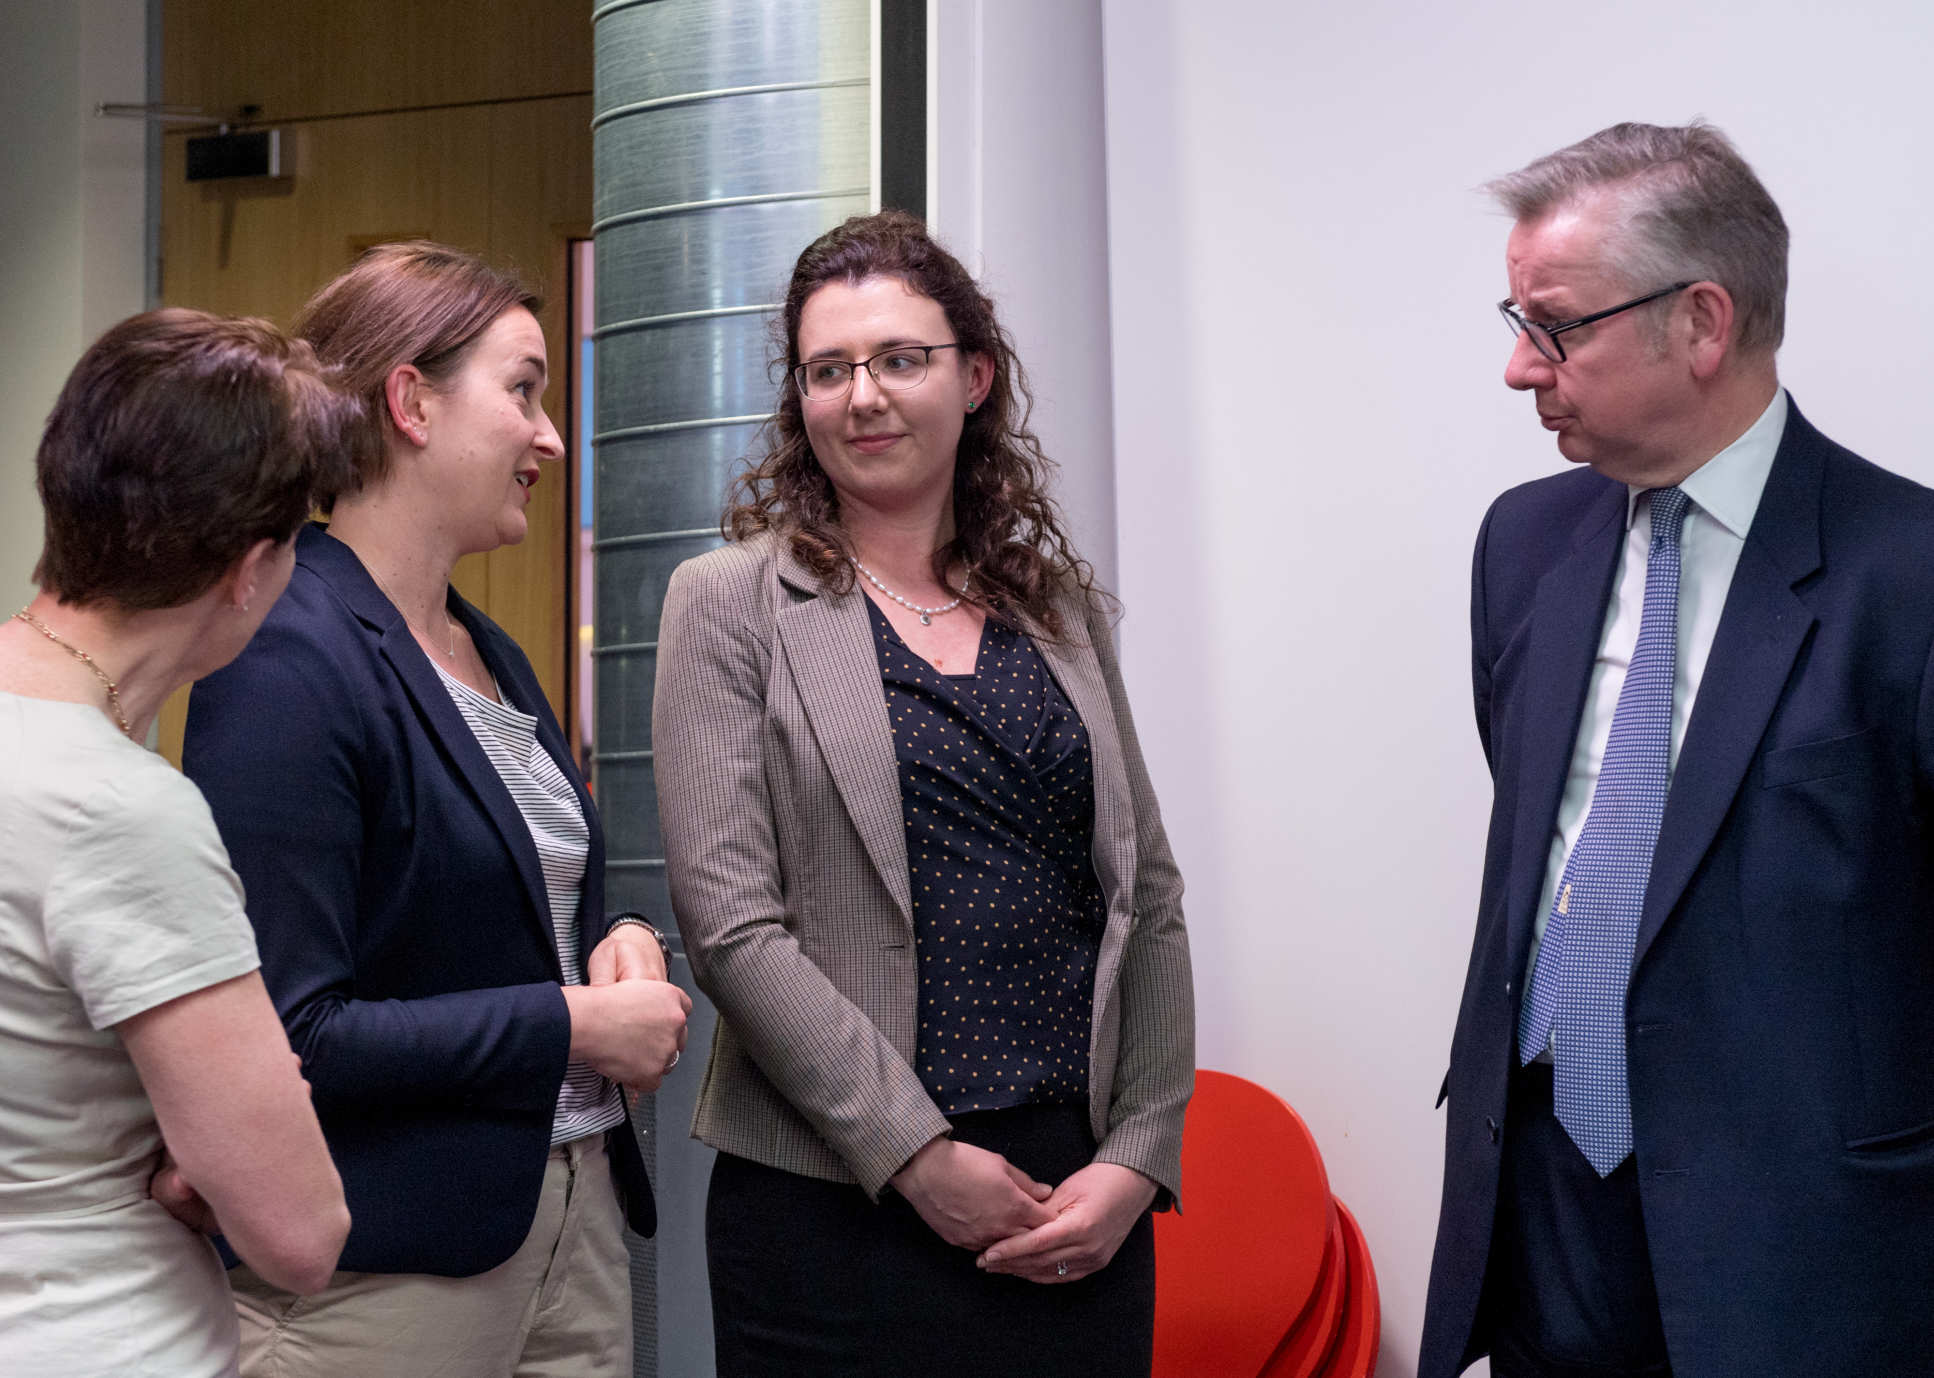 Dr Daniela Fecht (second from left) spoke to Michael Gove at the launch of the government's Clean Air Strategy